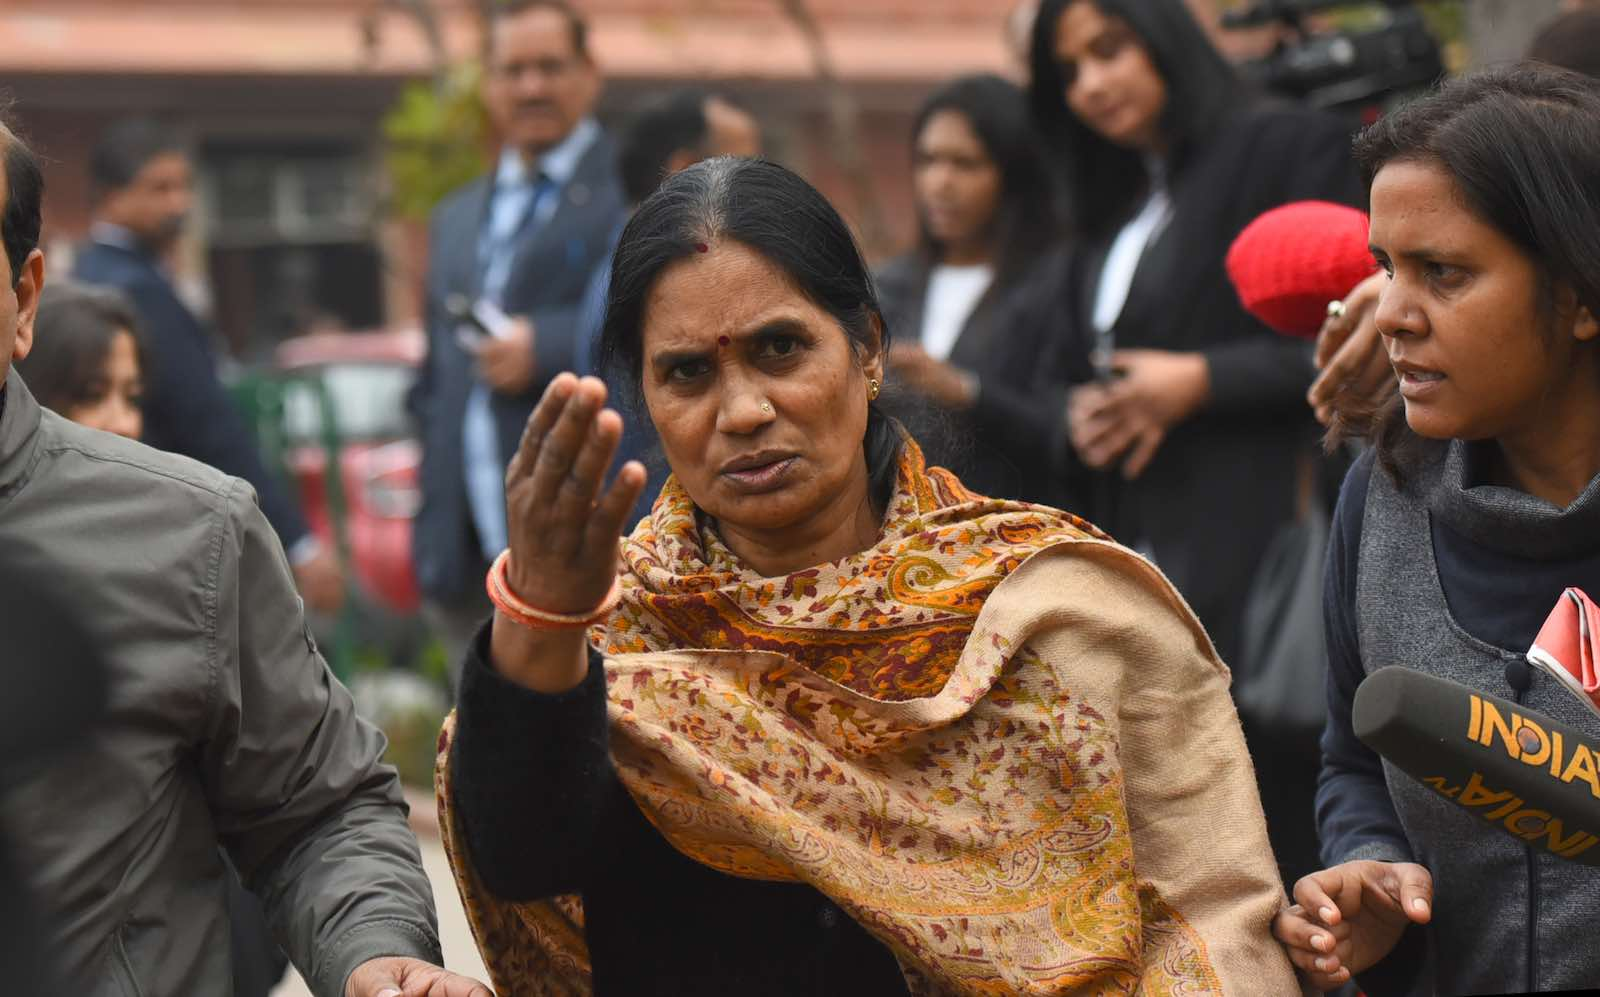 Asha Devi, mother of December 2012 gang rape victim Jyoti Singh, speaks to the media after a hearing at Supreme Court in New Delhi, 20 January (Photo: Raj K Raj/Hindustan Times via Getty)